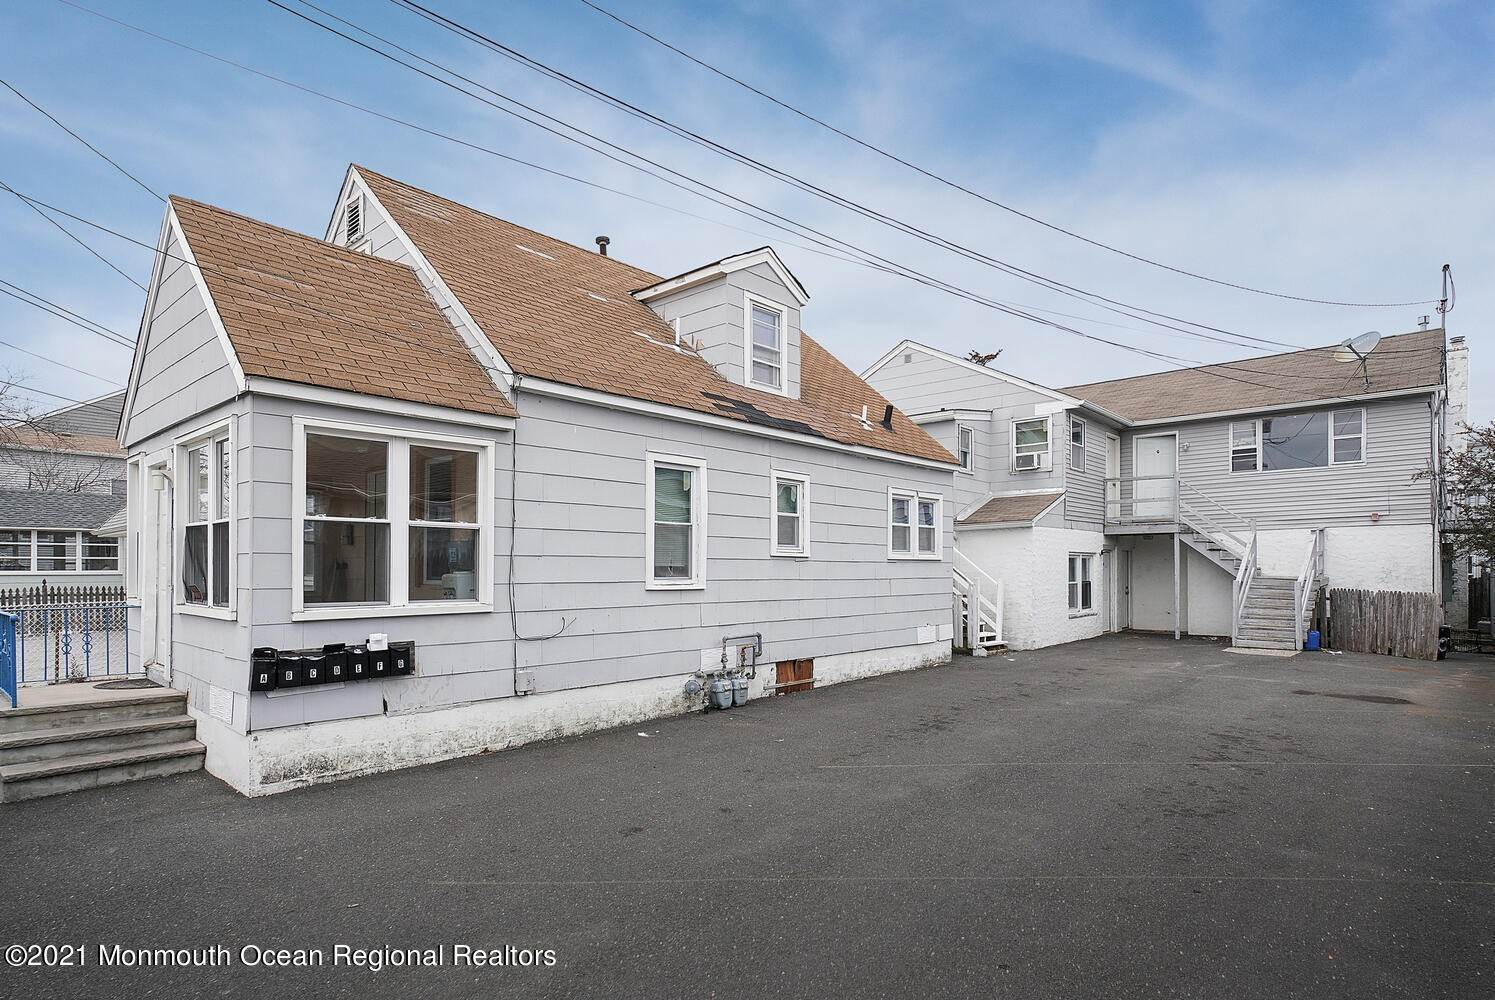 Property for Sale at 250 Hancock Avenue Seaside Heights, New Jersey 08751 United States